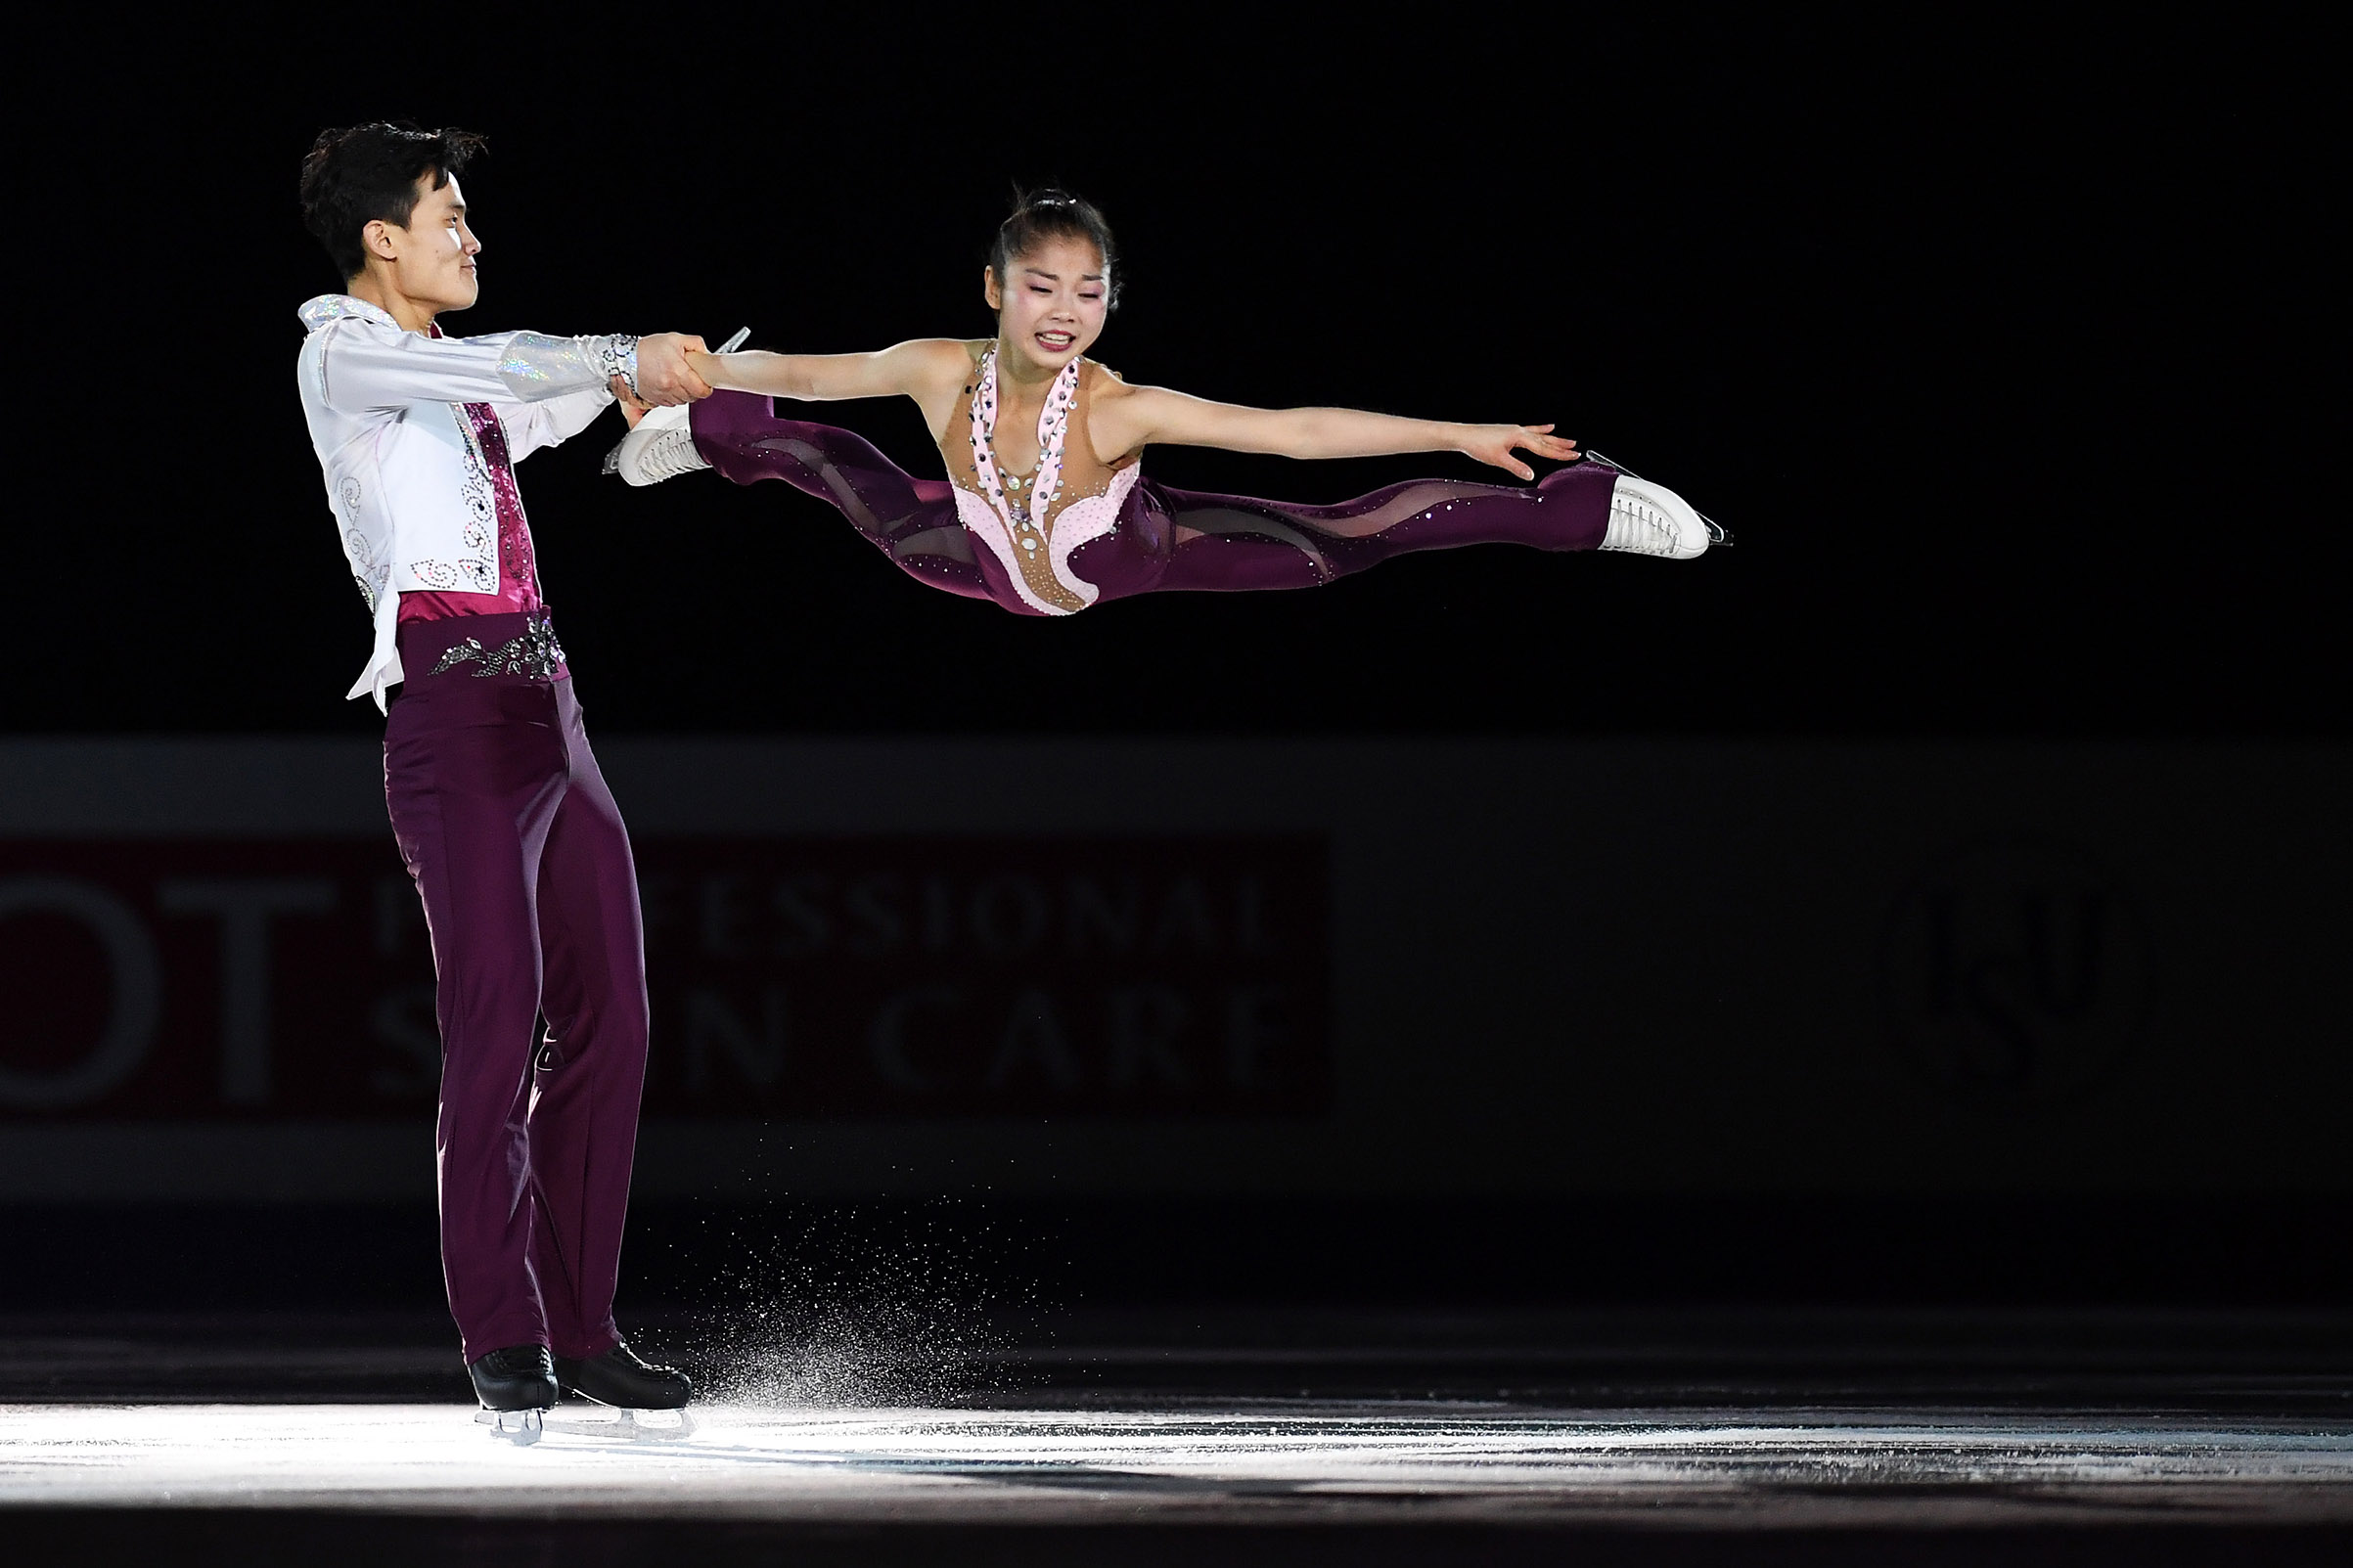 North Korean figure skaters Tae Ok Ryom and Ju Sik Kim of North Korea perform during the Four Continents Figure Skating Championships at Taipei Arena in Taiwan, on Jan. 27, 2018. Atsushi Tomura—ISU/Getty Images